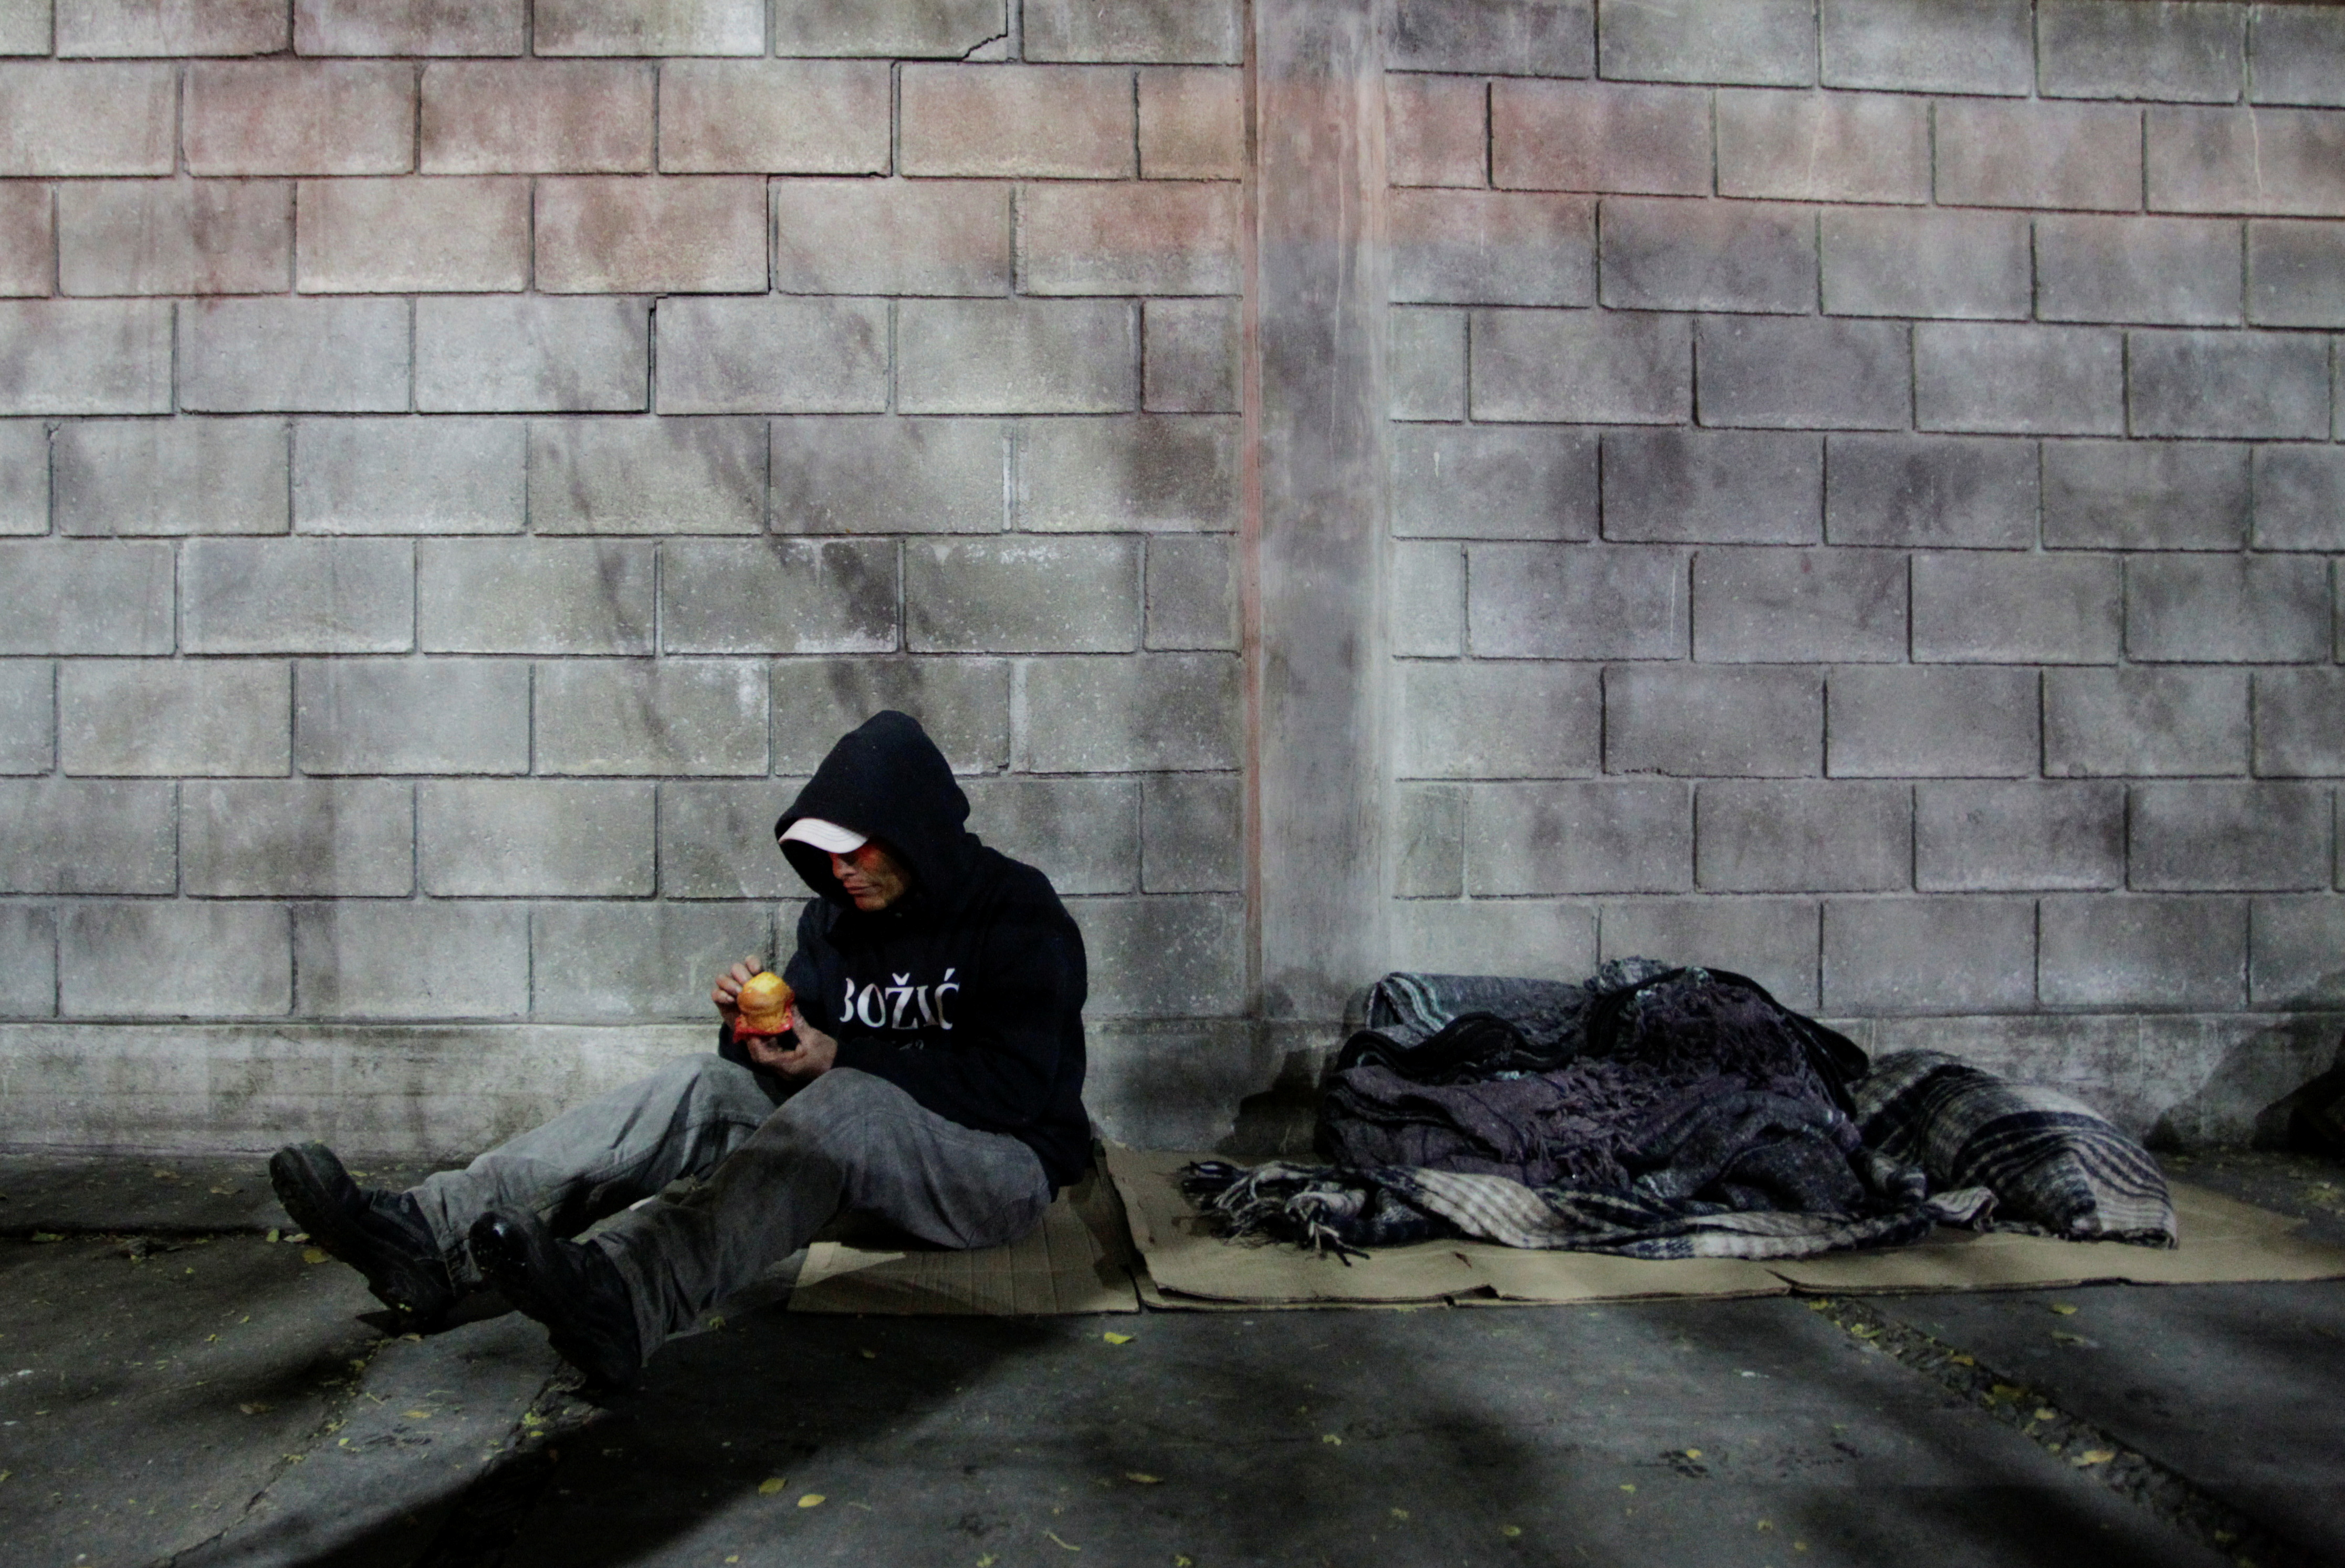 A man eats a piece of bread as he prepares to sleep on the street during a cold front in Monterrey, Mexico February 15, 2021. REUTERS/Daniel Becerril